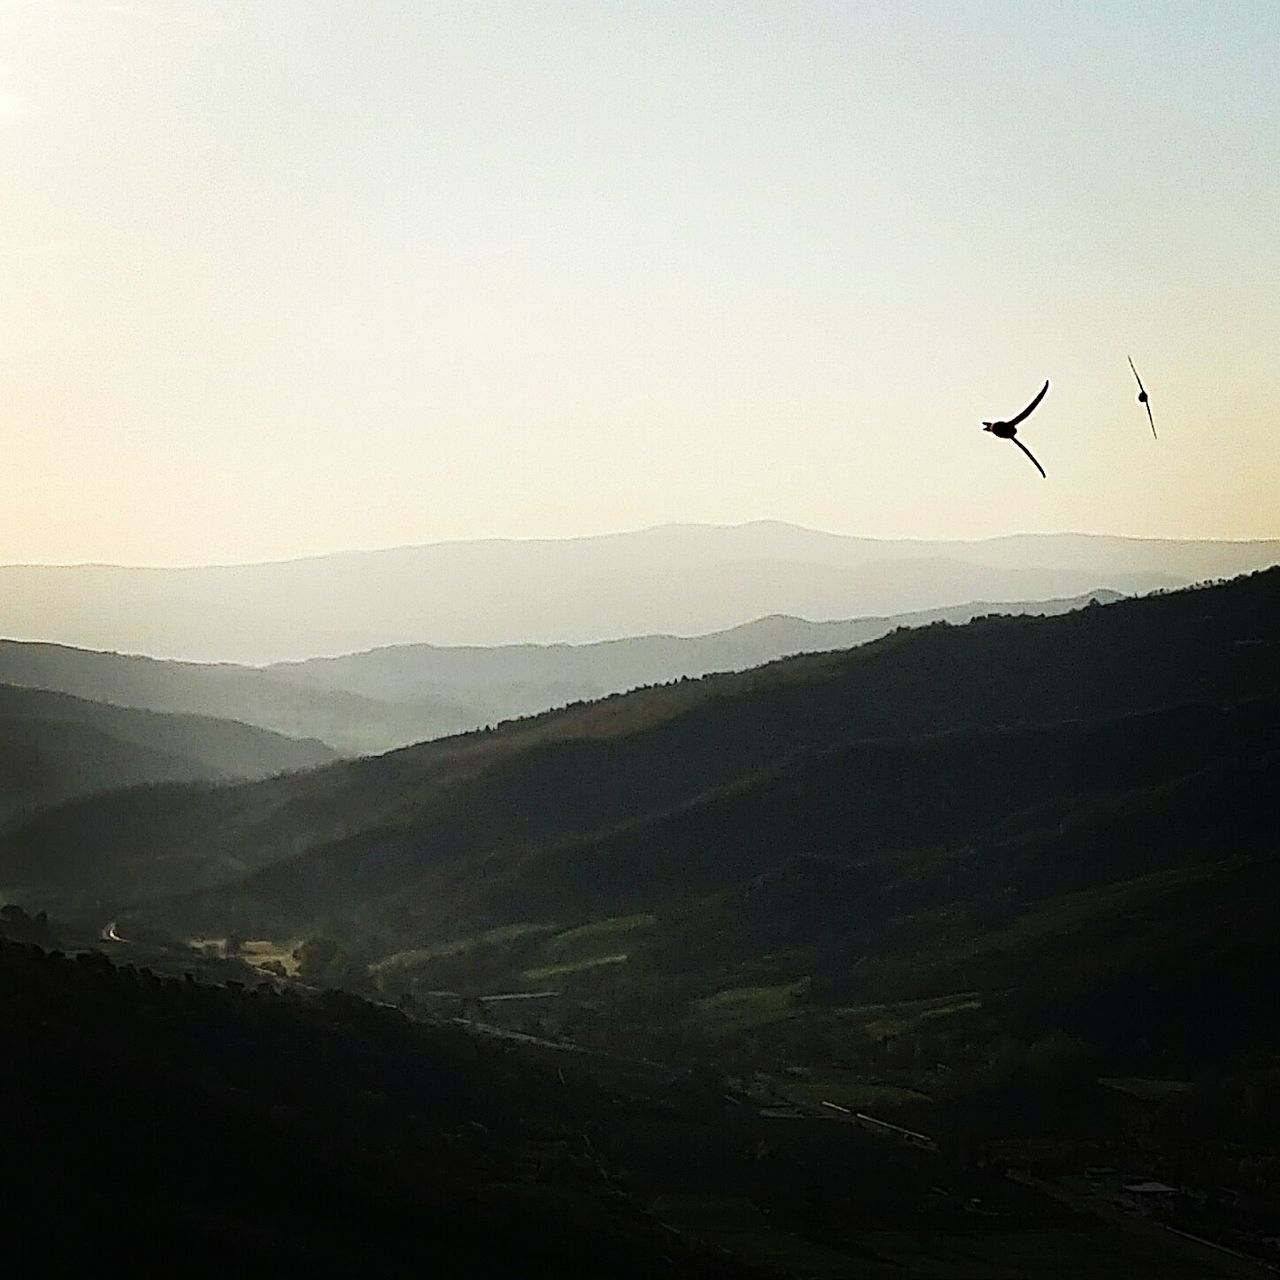 Two Birds Flying Over Mountains